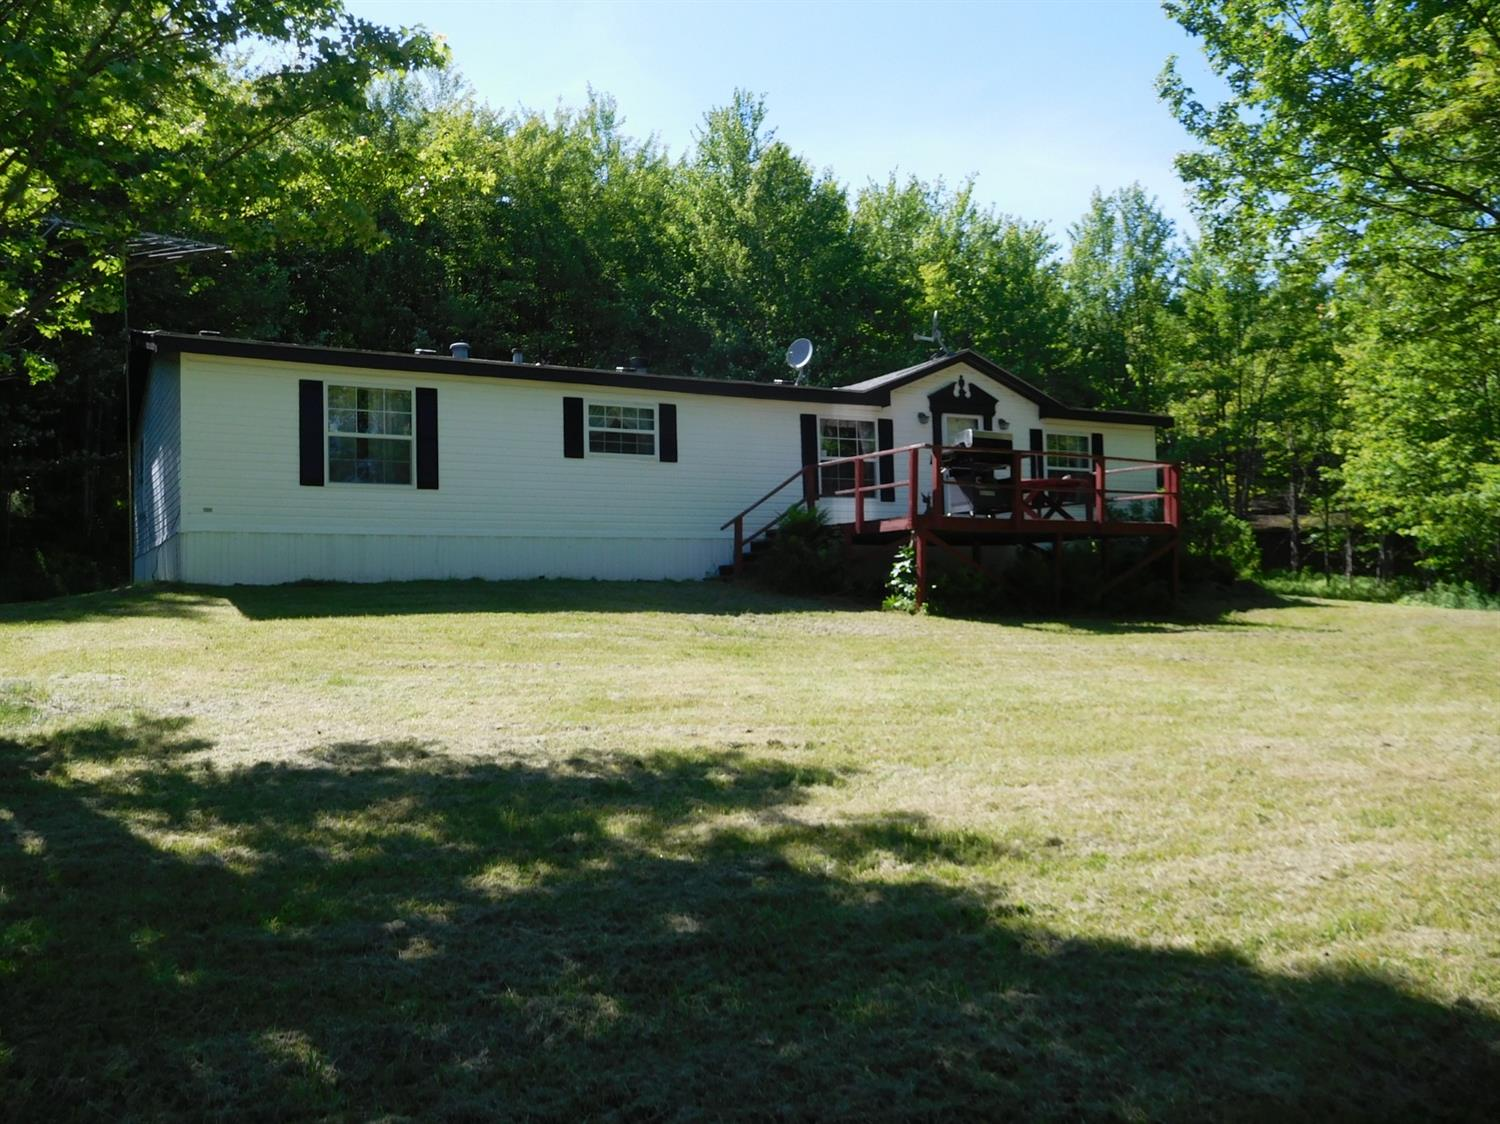 179,000 - 3 Bedrooms, 2 Baths40.228 AcresLush Country SettingWith Pond